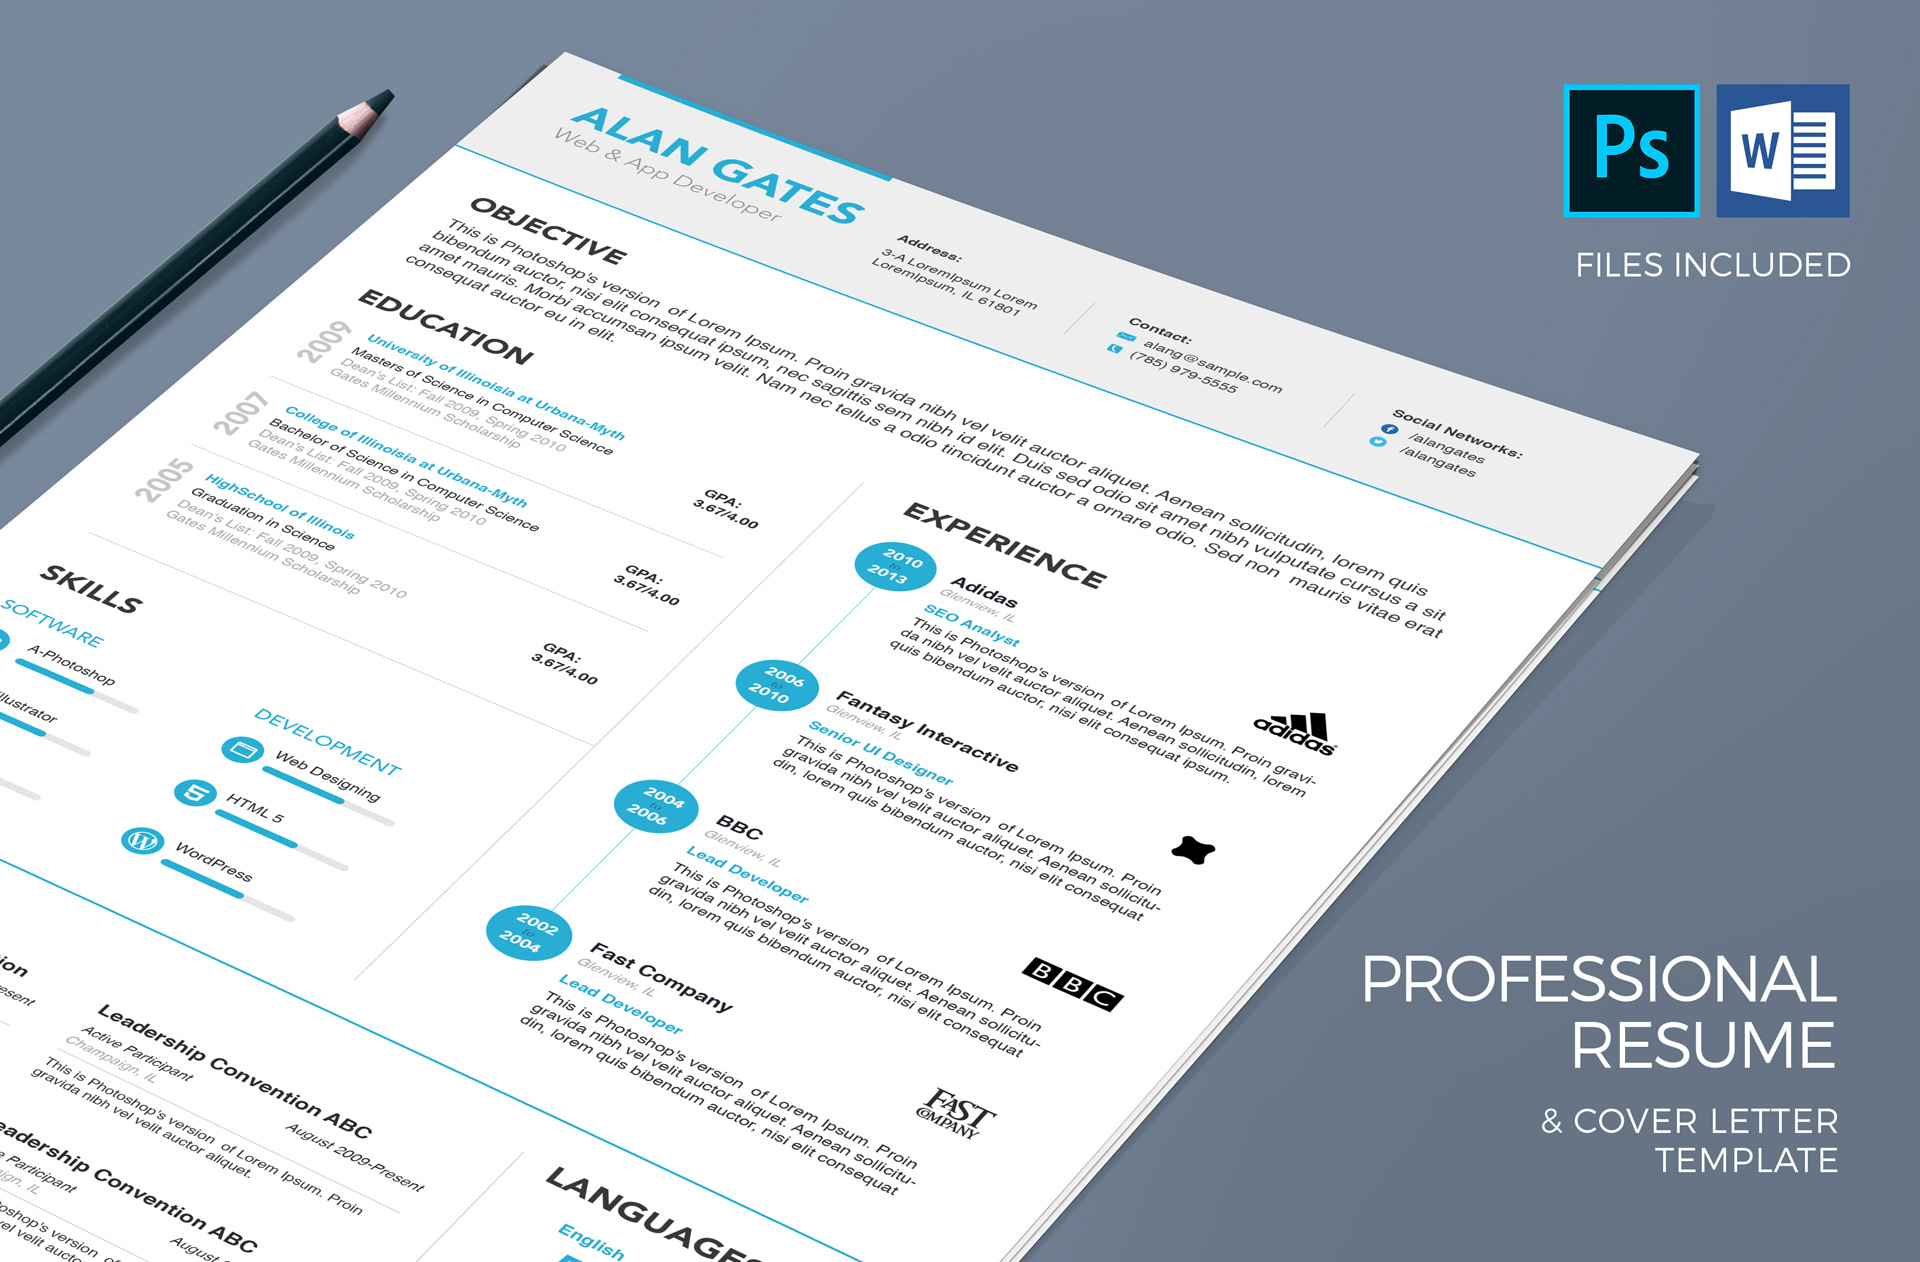 Professional Resume & Cover Letter Template in MS Word & PSD ...